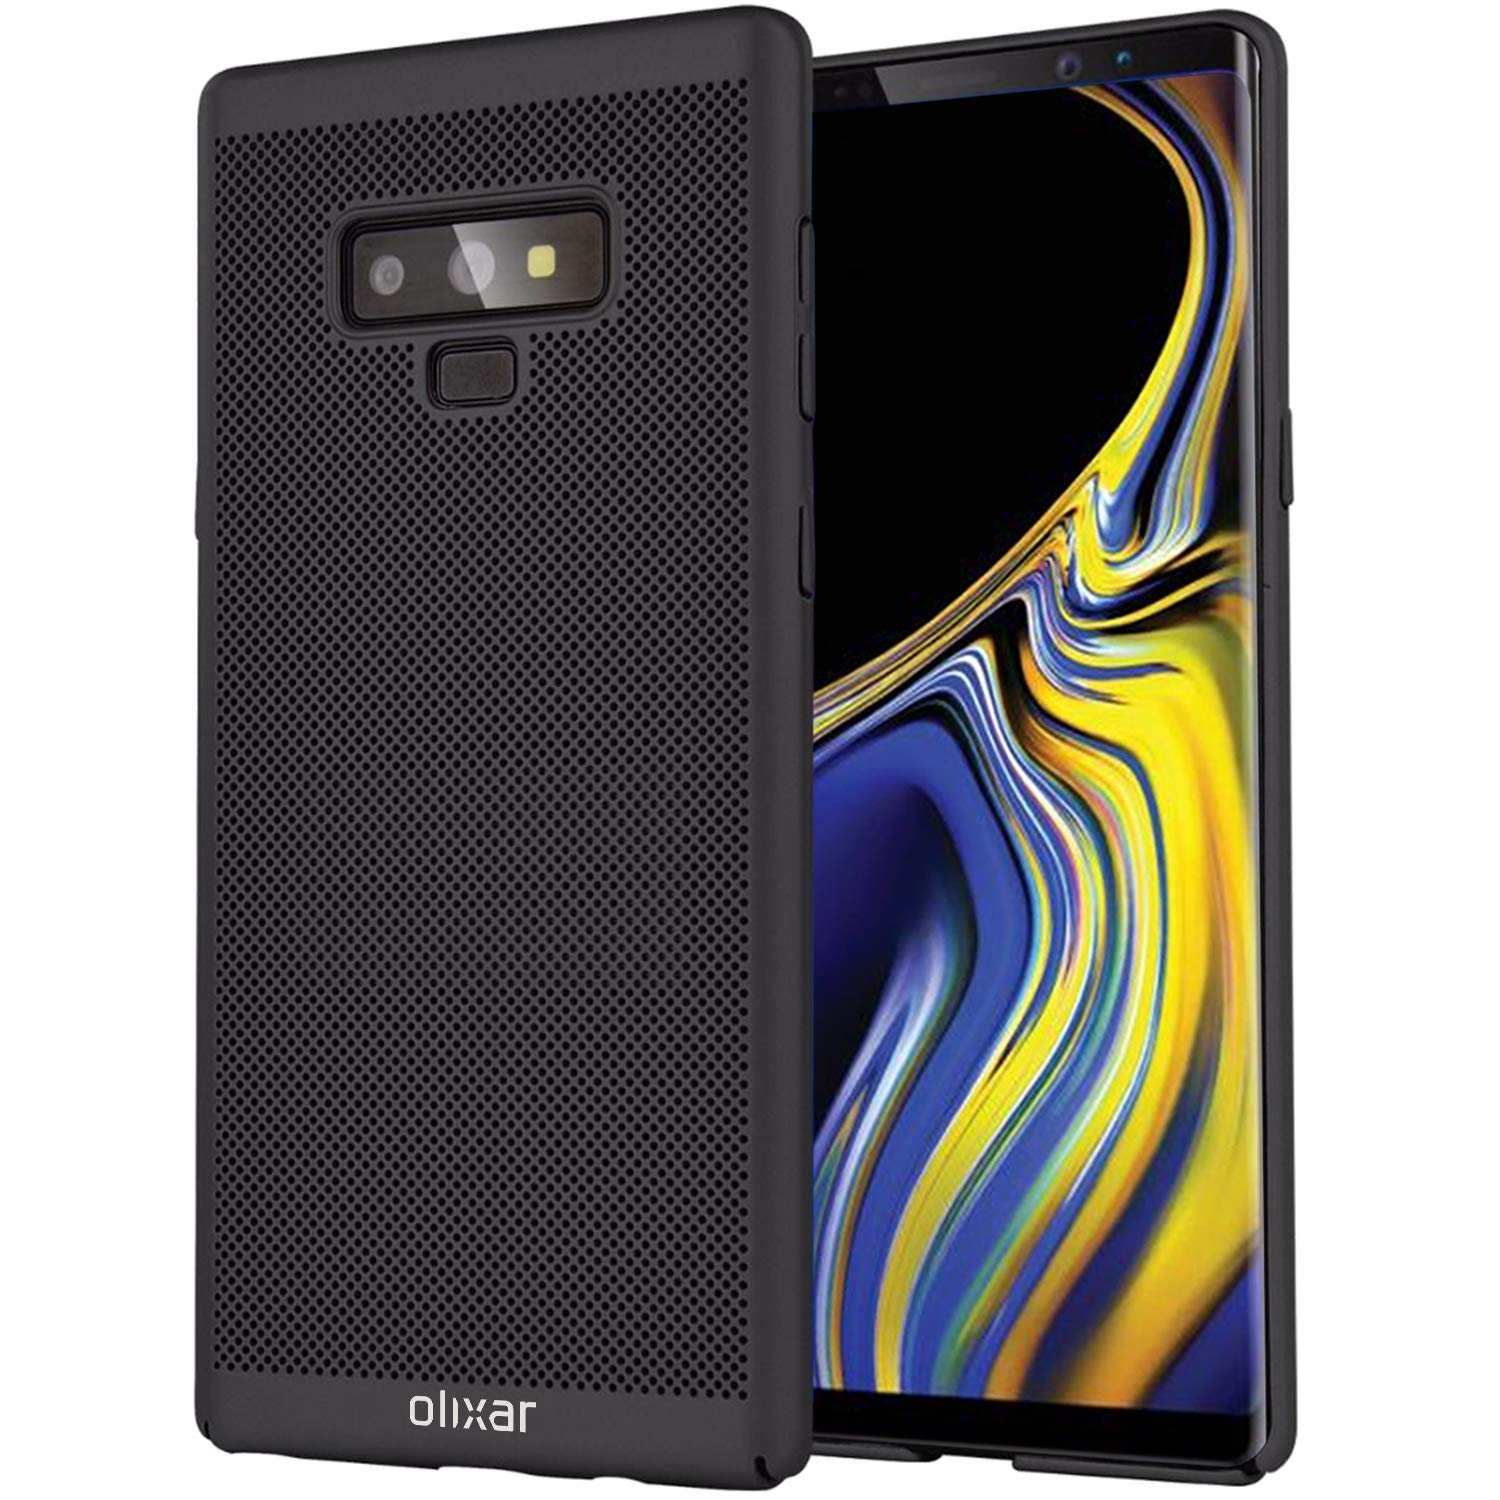 Olixar for Samsung Galaxy Note 9 Slim Case - Heat Dissipating Mesh Cover - MeshTex - Cooling Case - Breathable Case - Wireless Charging Compatible - Black